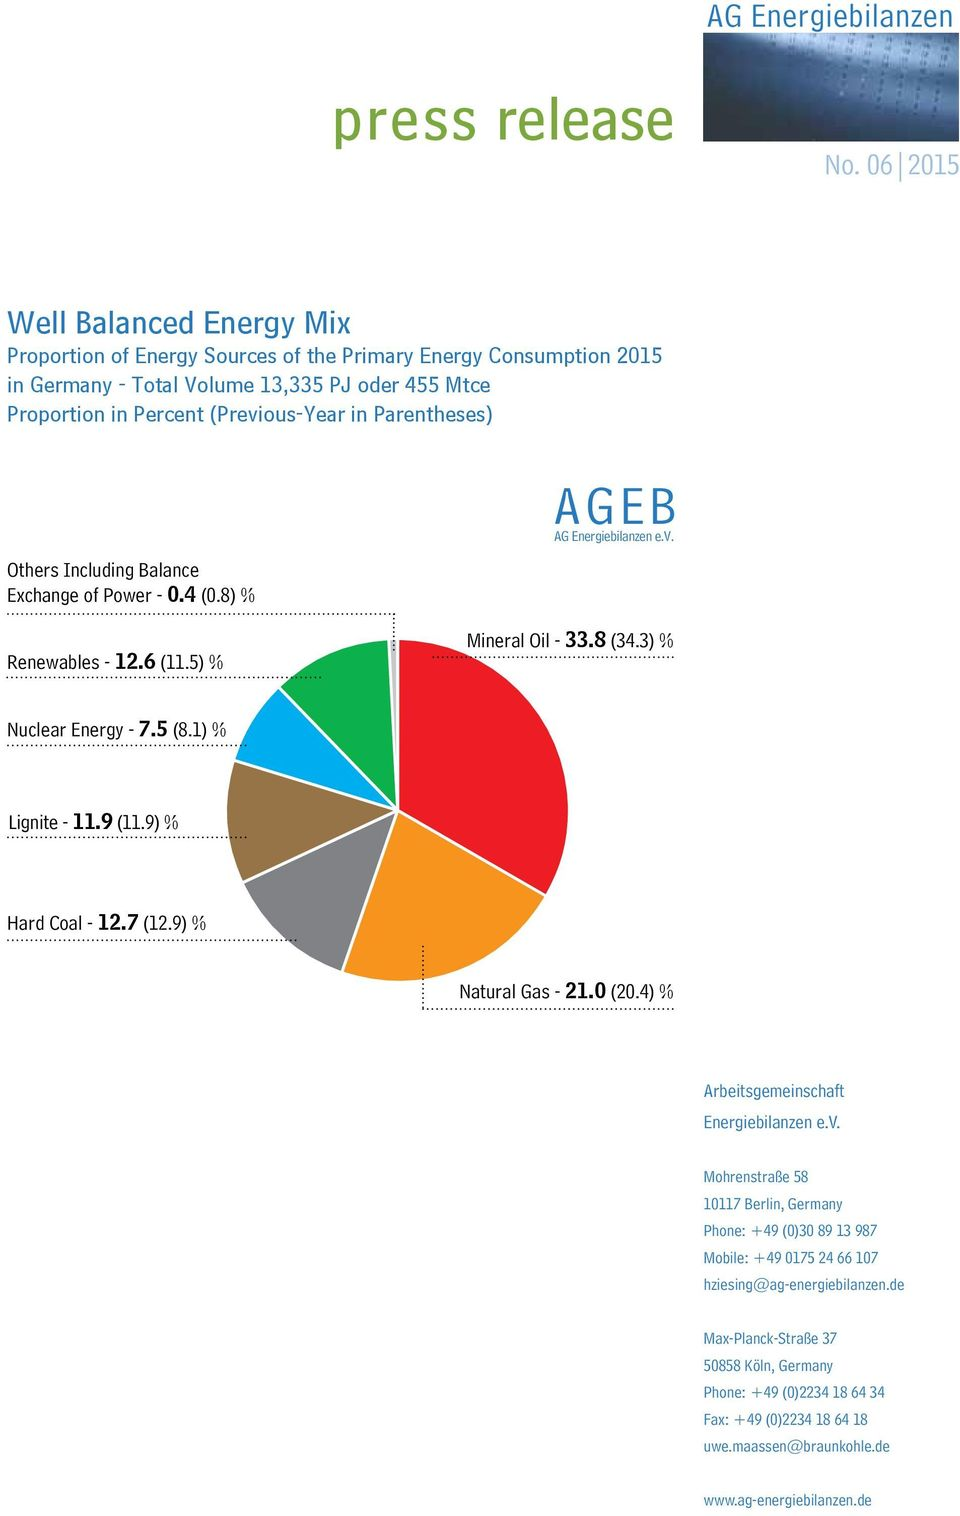 Including Balance Exchange of Power - 0.4 (0.8) % Renewables - 12.6 (11.5) % AG Mineral Oil - 33.8 (34.